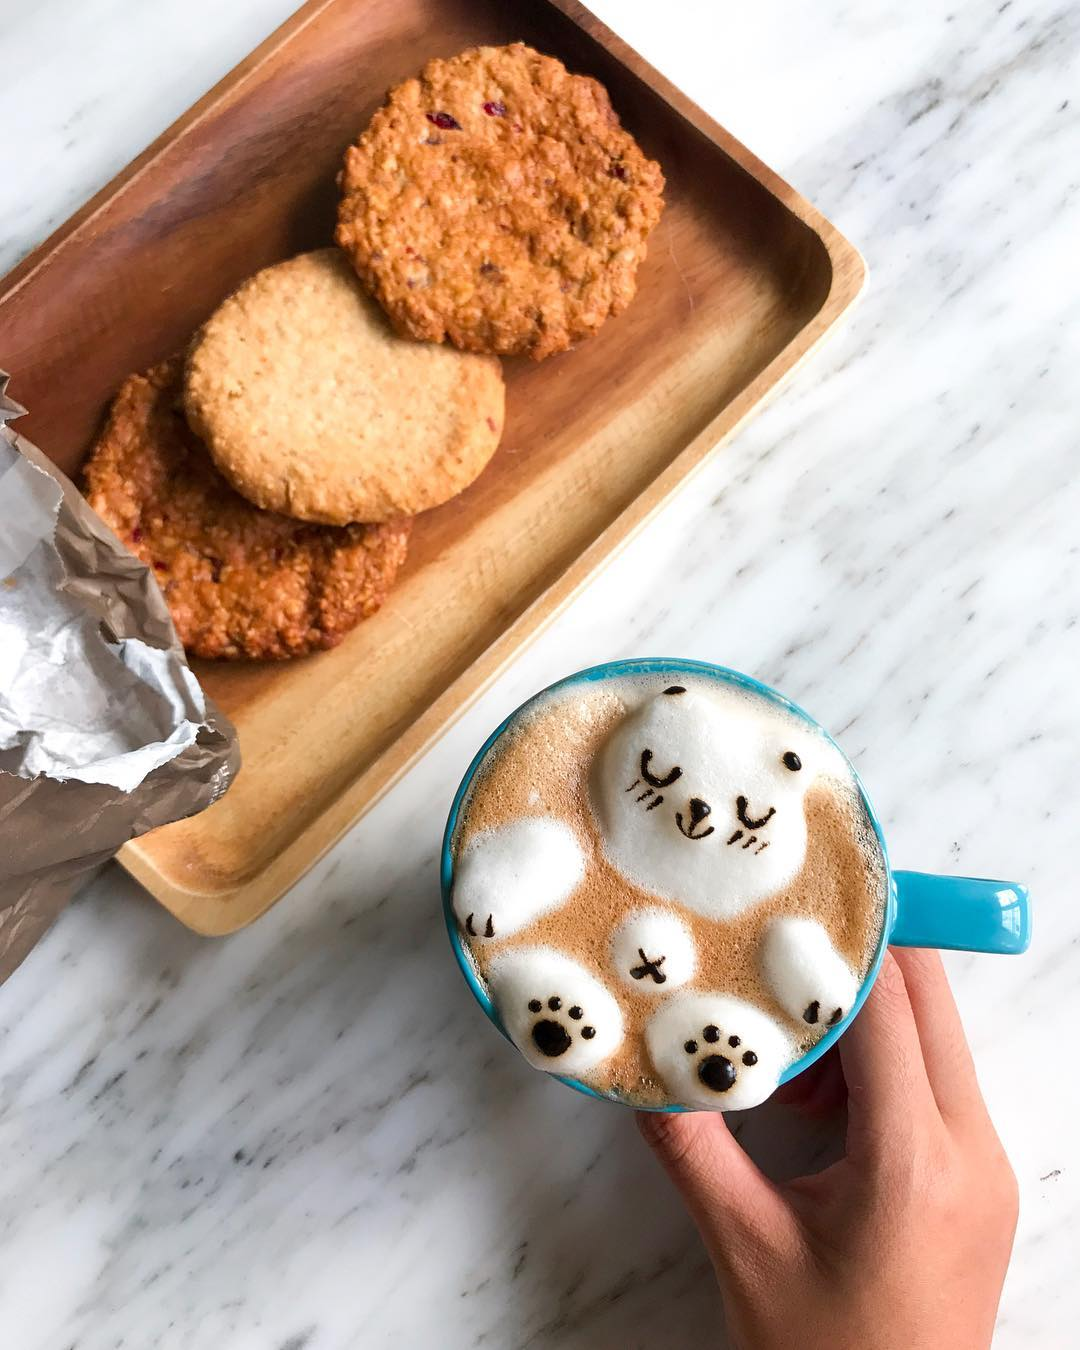 Self-Taught Latte Artist Daphne Tan Whips Up Adorable 3D Coffee Art